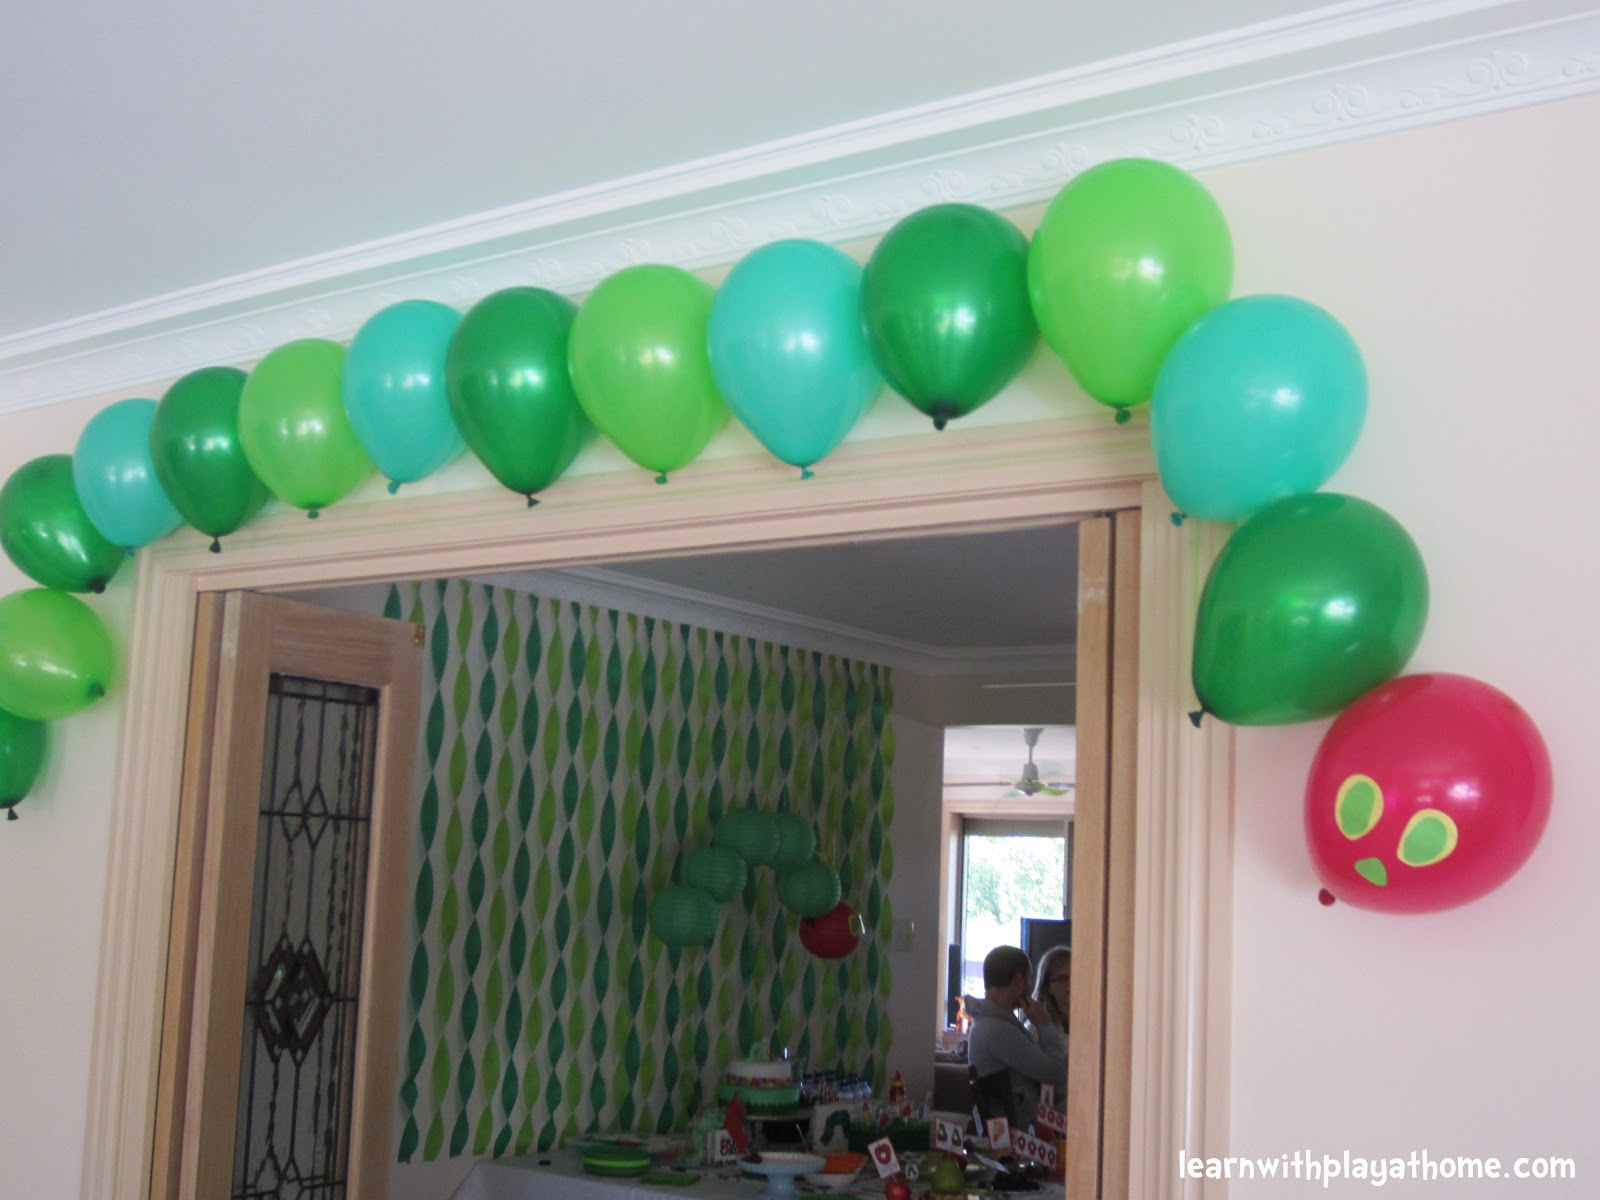 Learn with play at home diy party decorations for Balloon decoration ideas at home